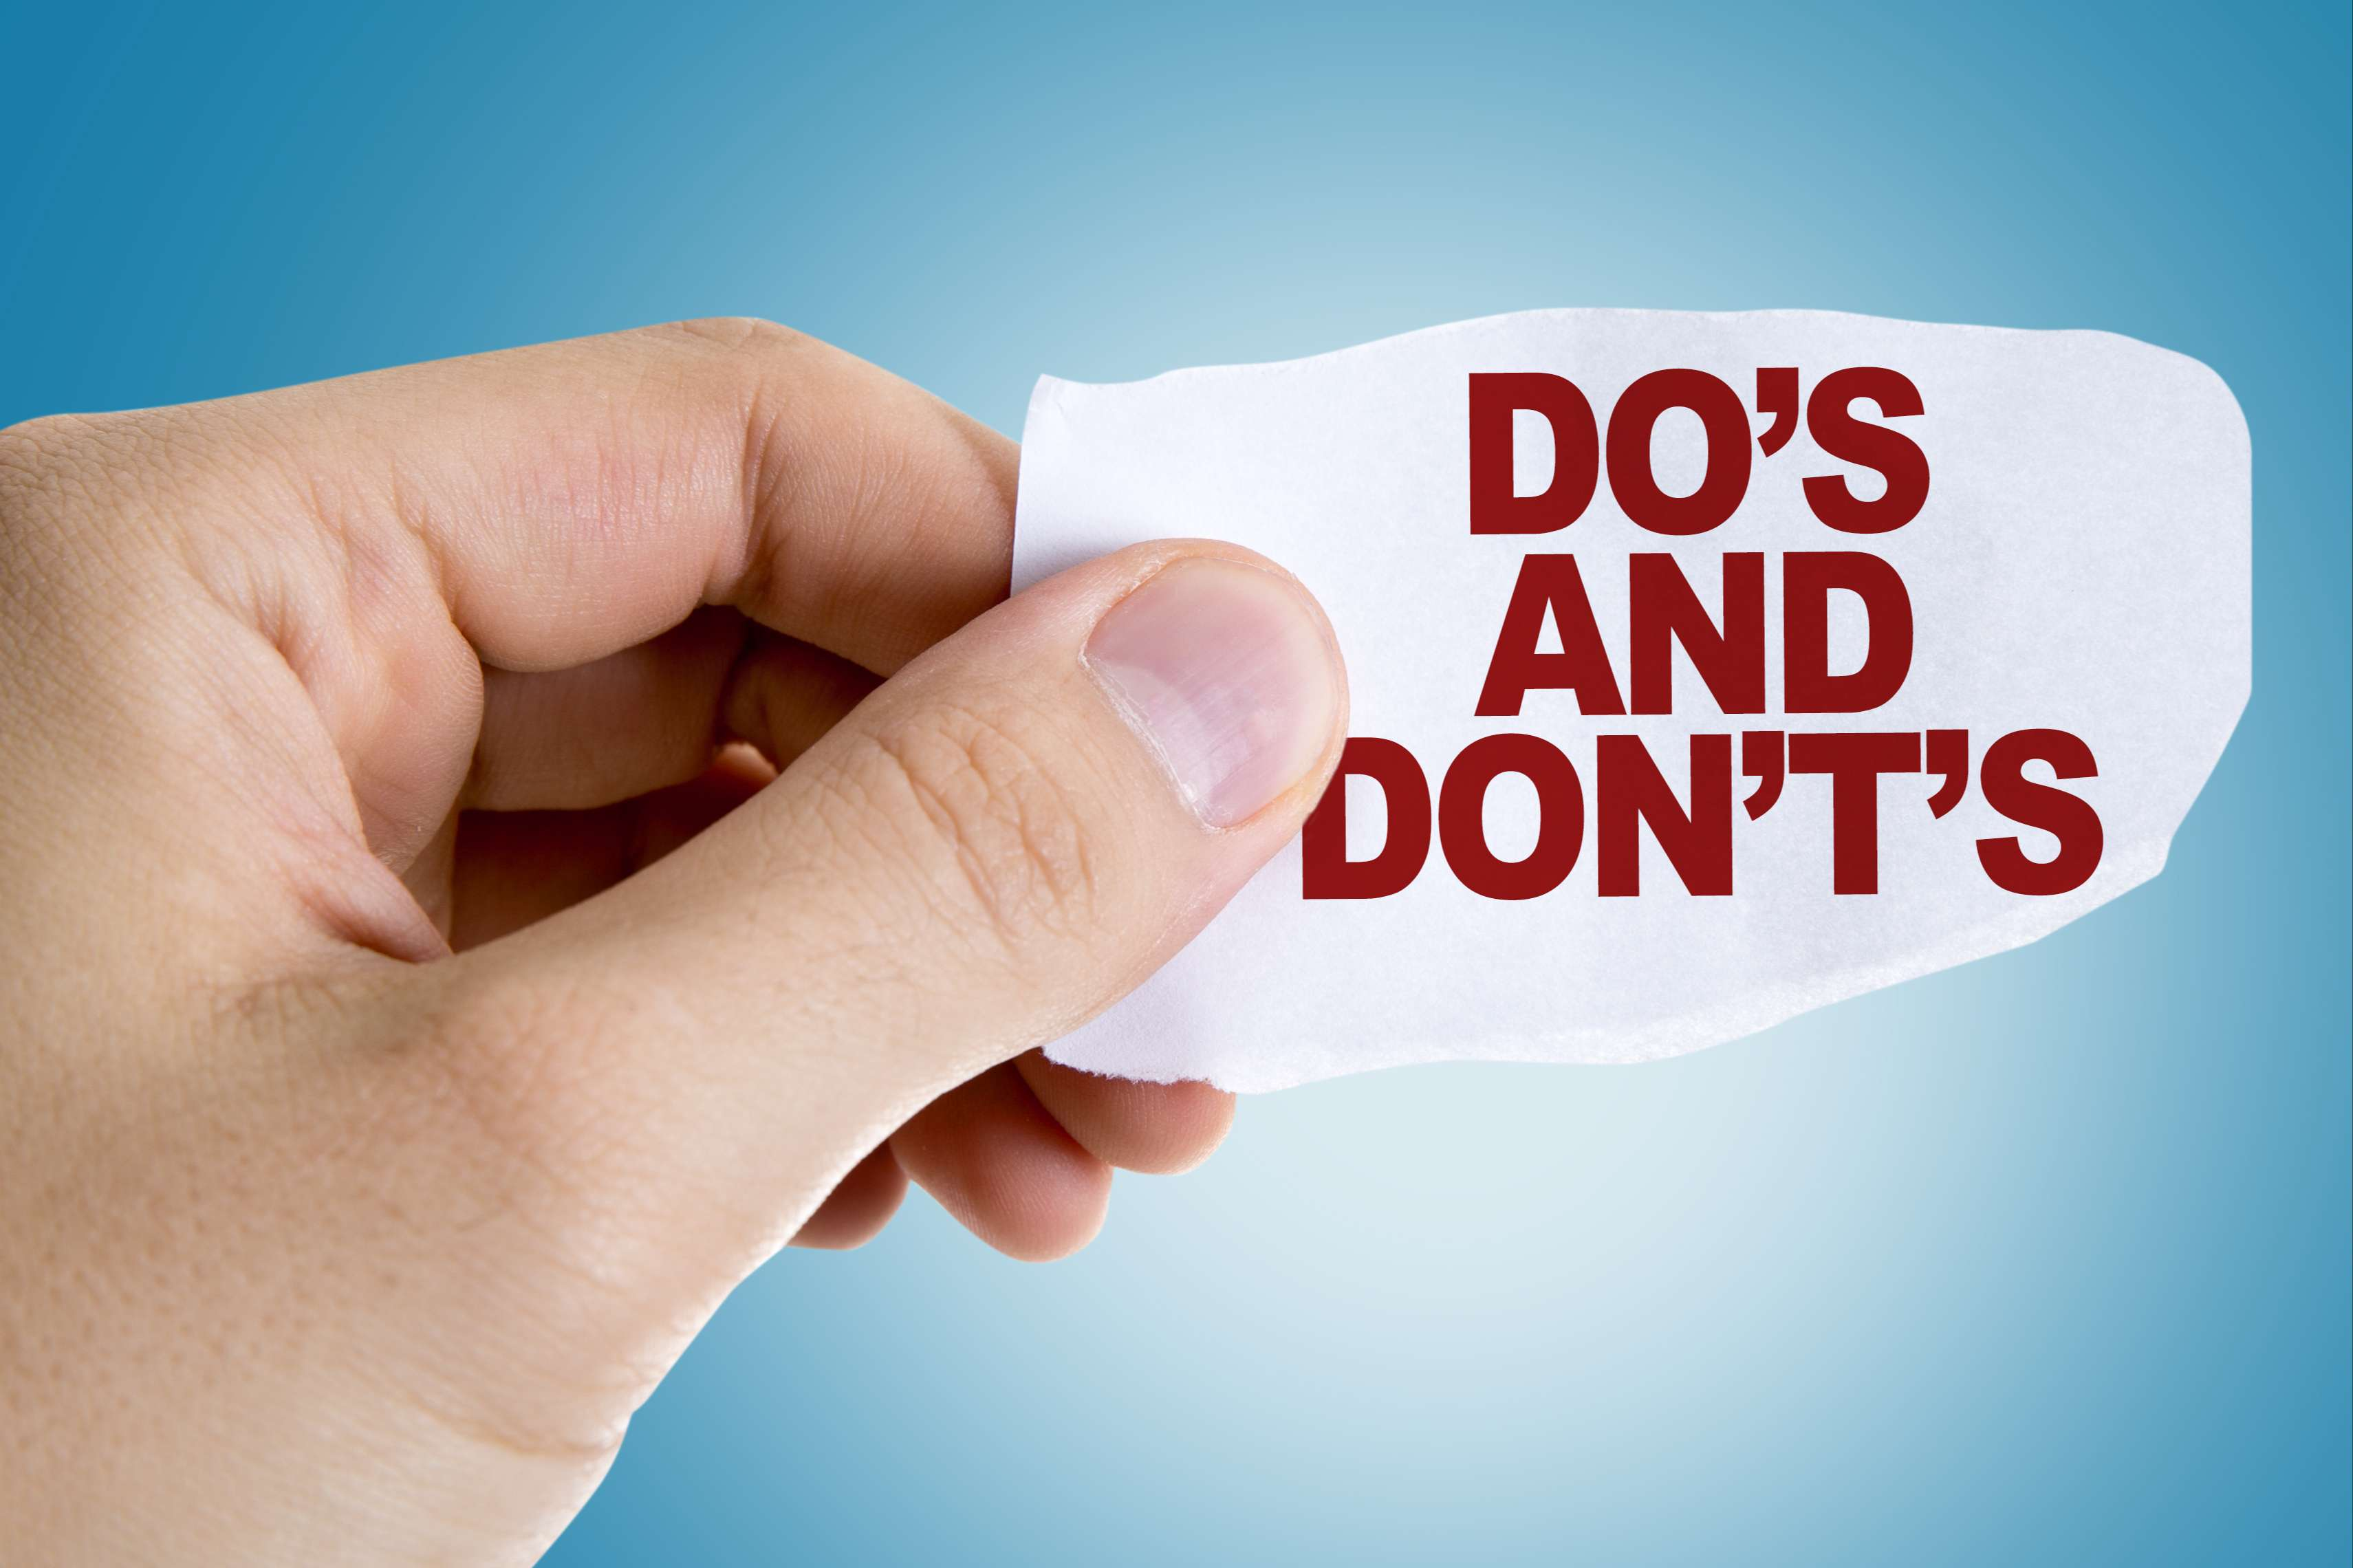 Someone holding a paper that says do's and don'ts